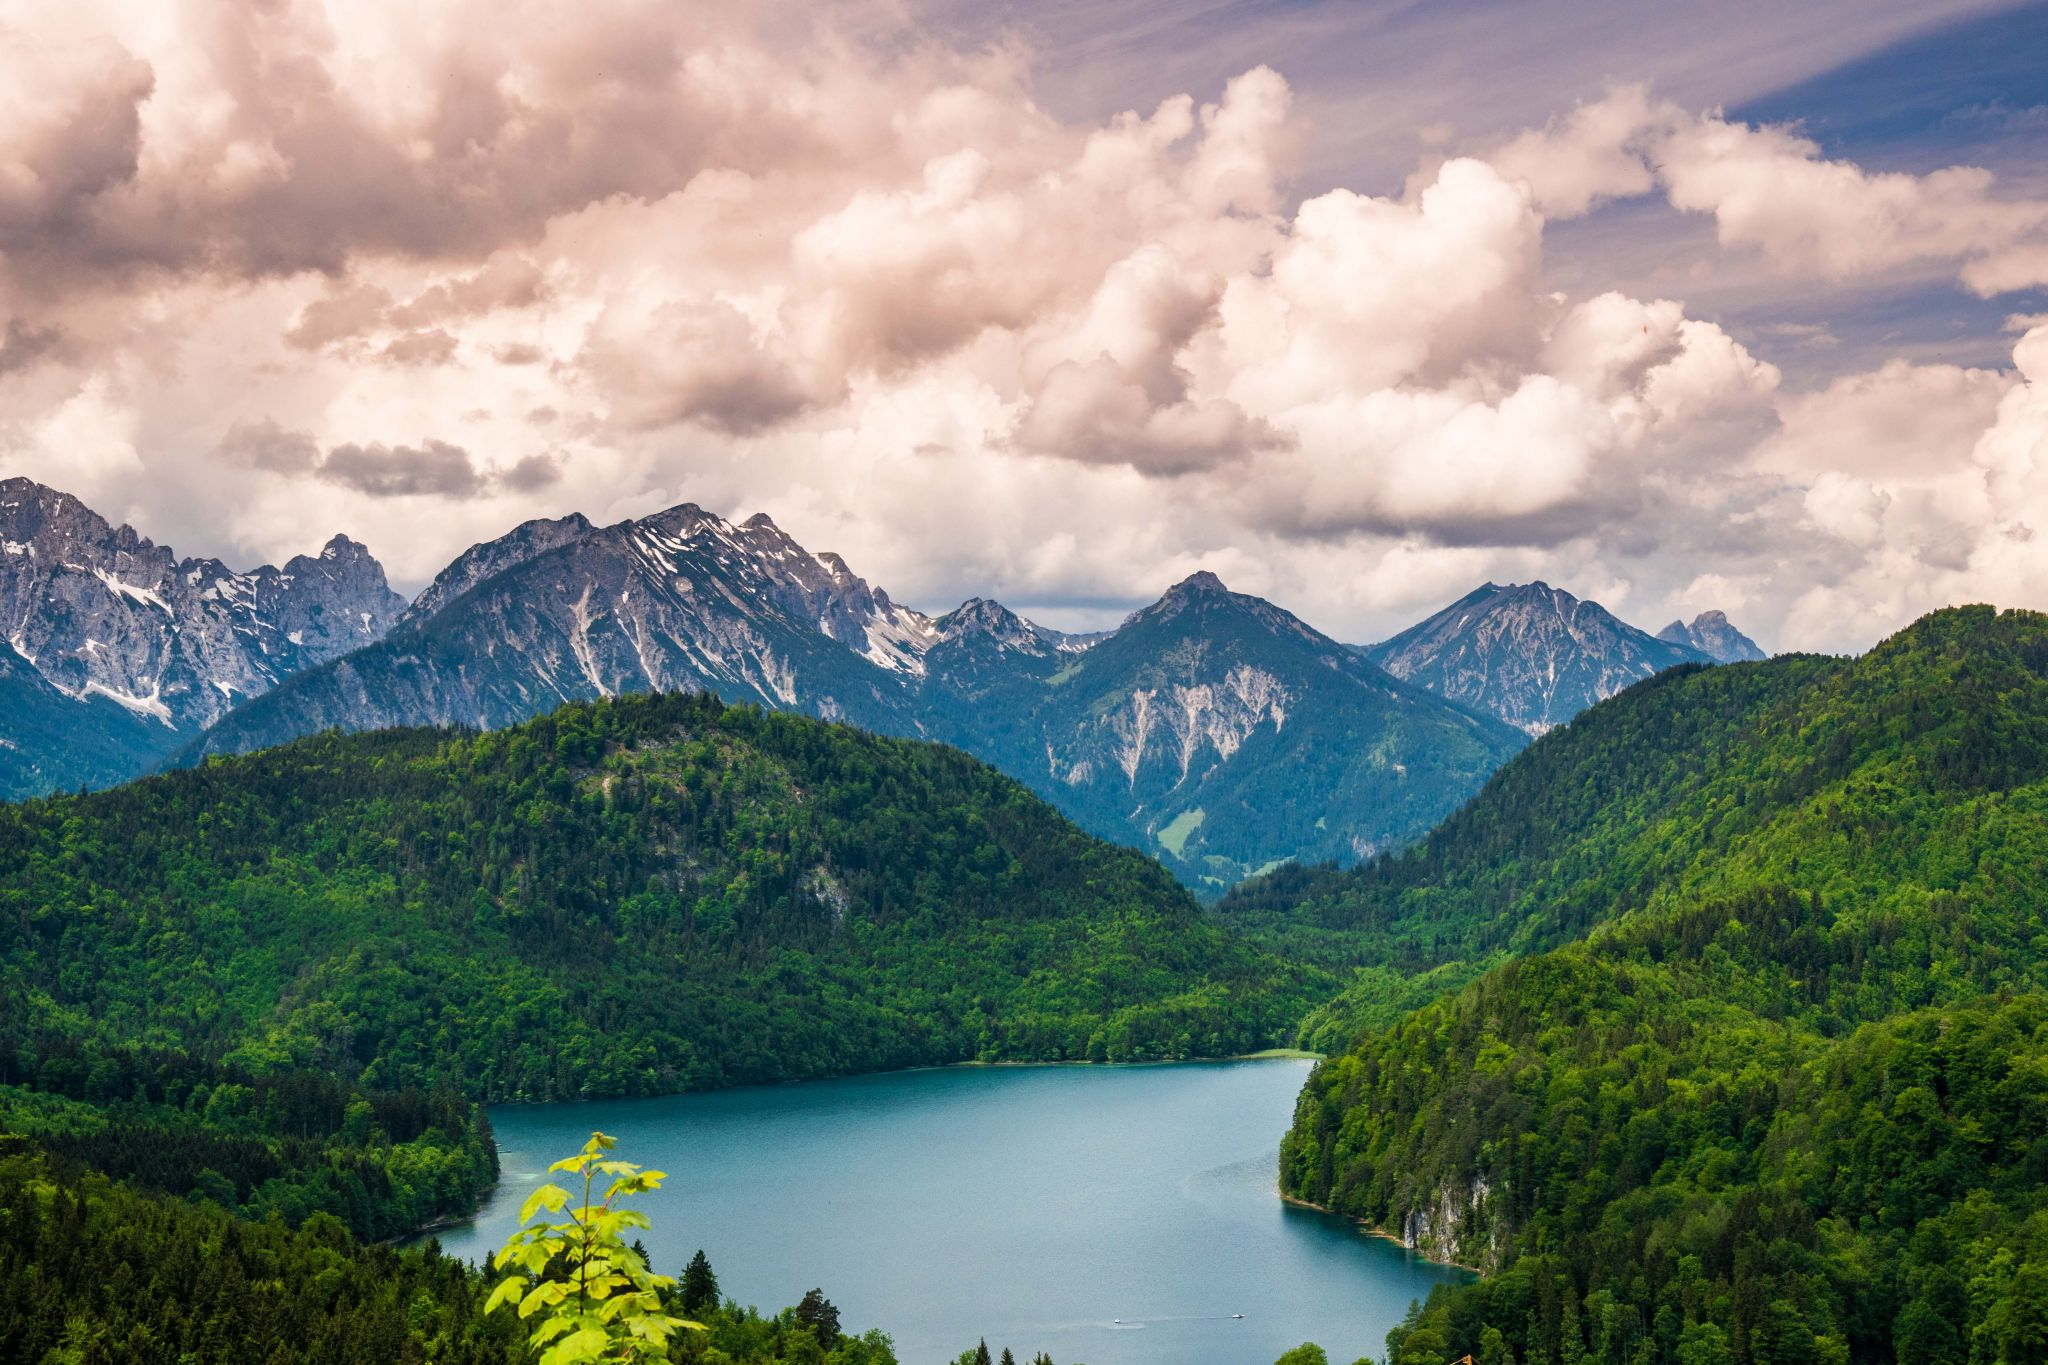 View of Lake Alpsee, Germany